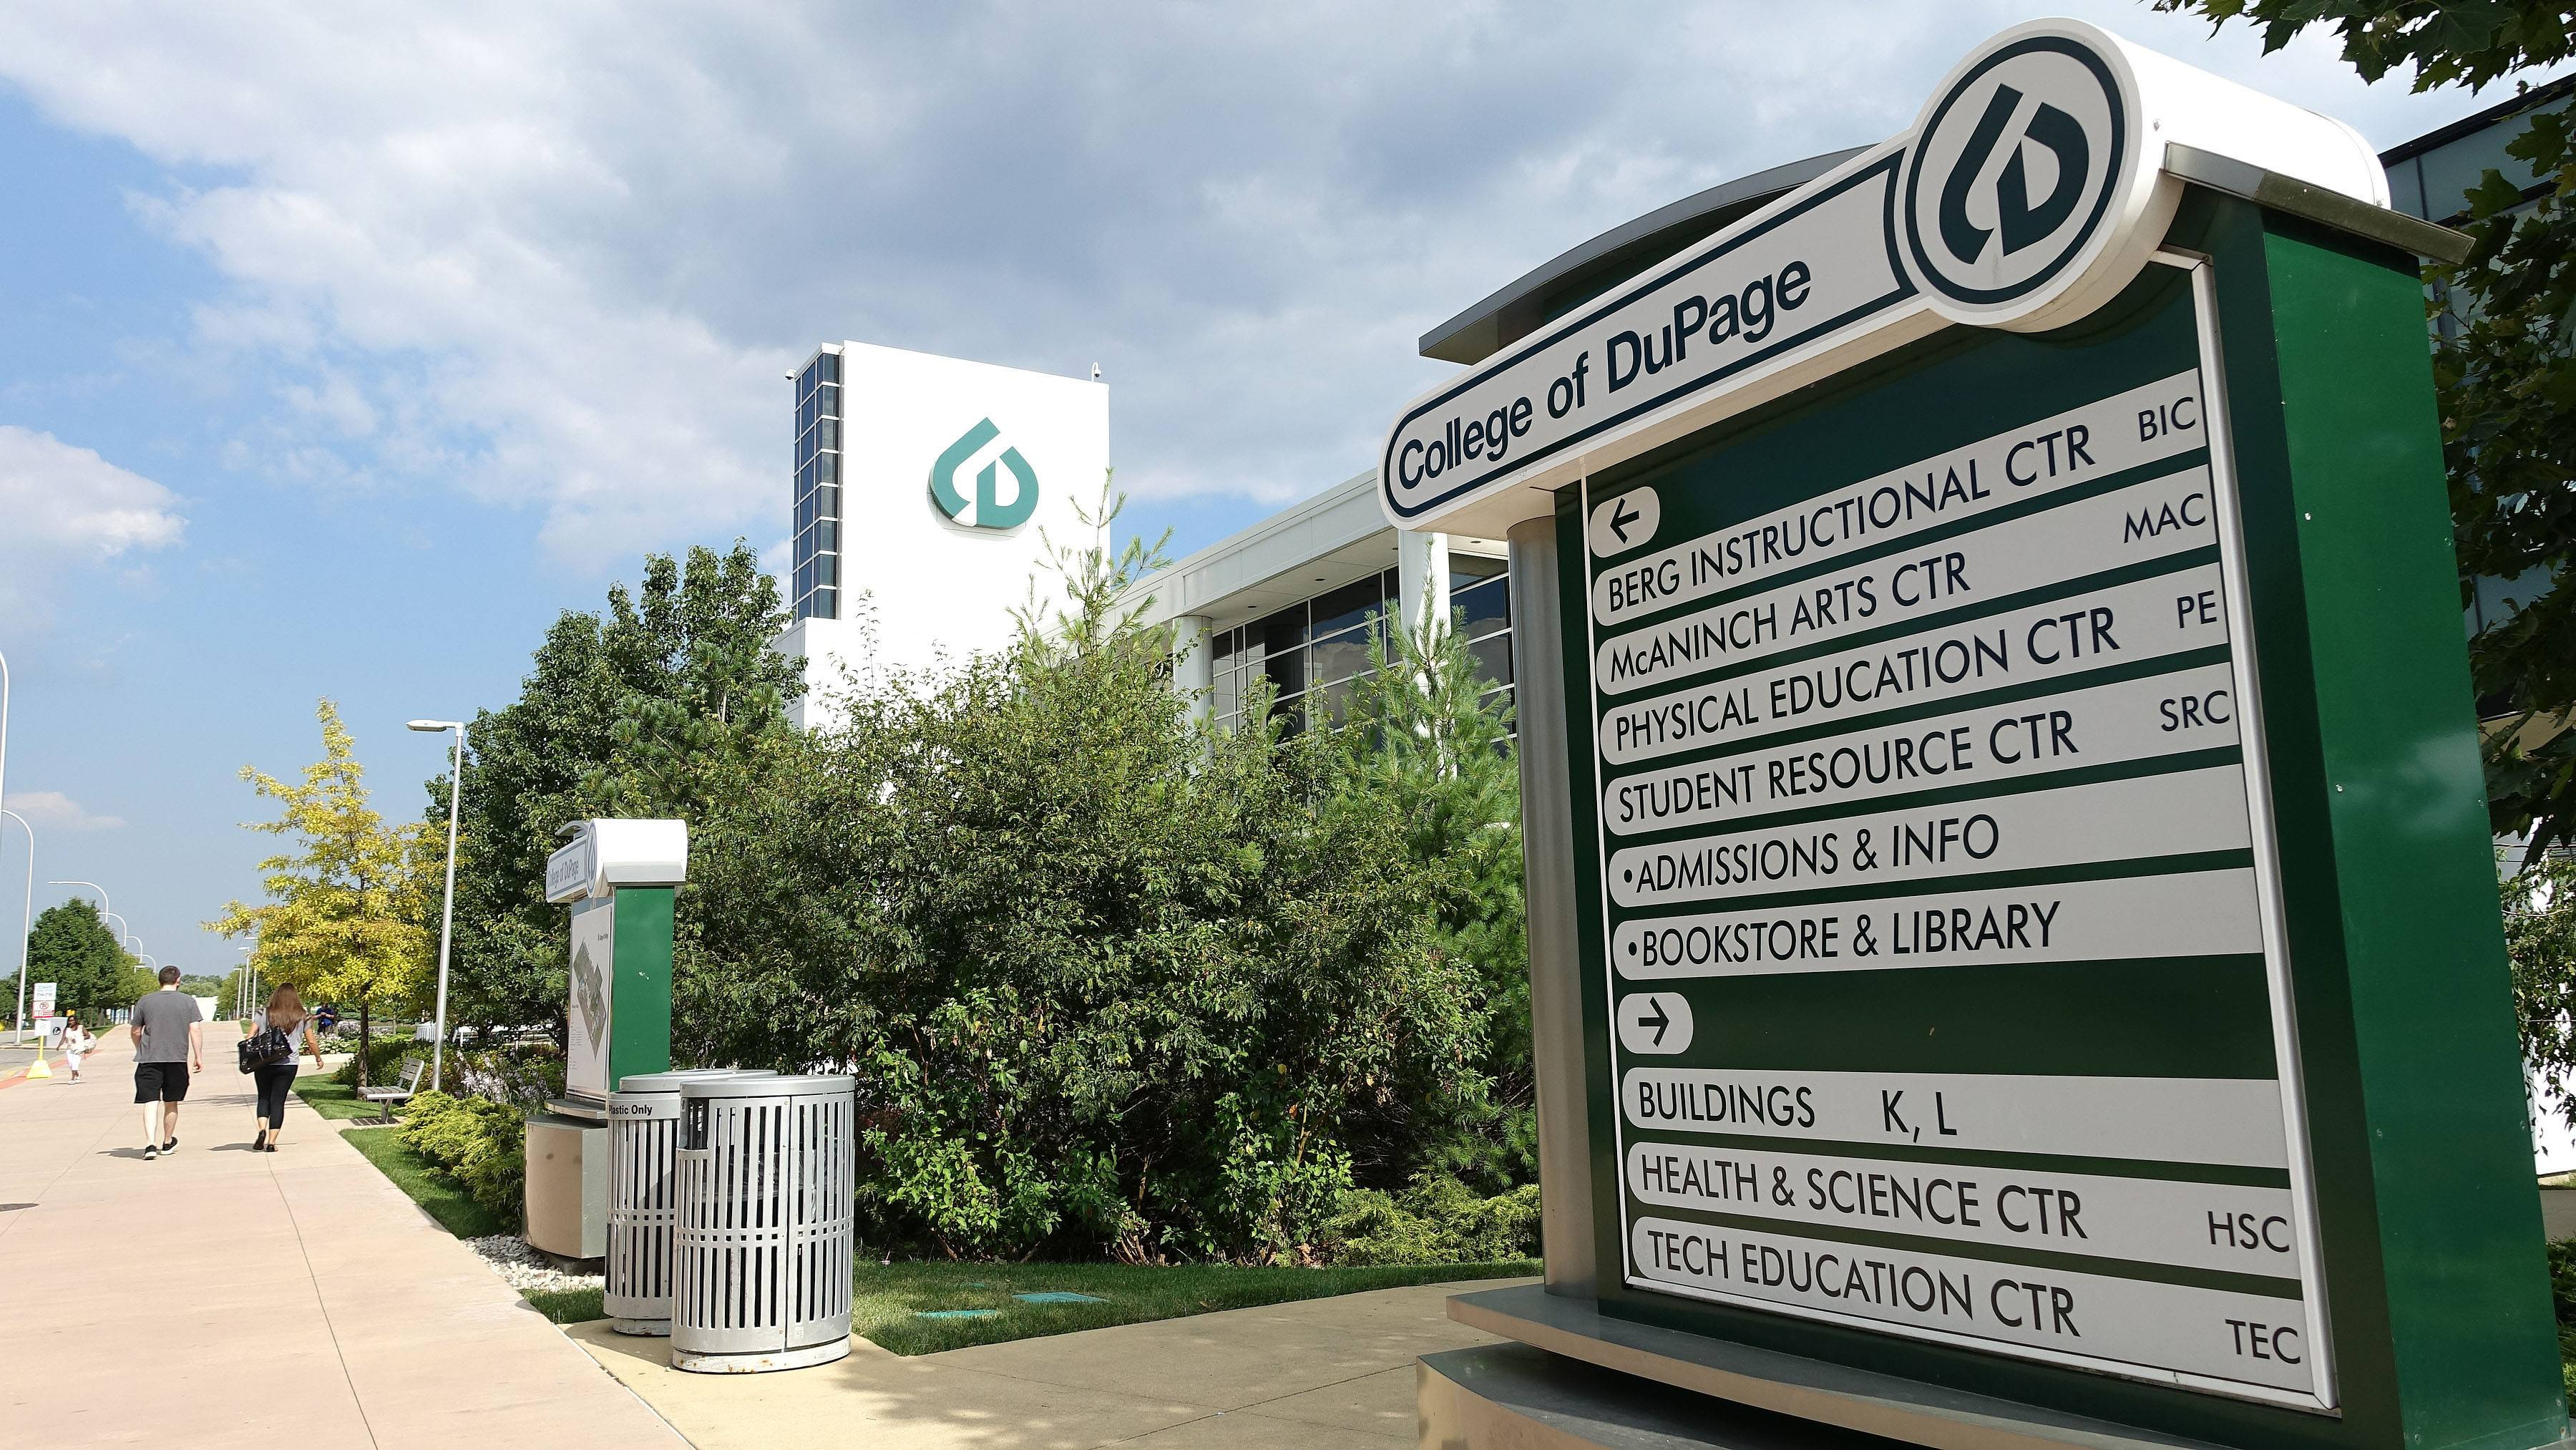 College of DuPage has announced a special Thursday night meeting with one item on the agenda: filling a vacant seat the board of trustees.